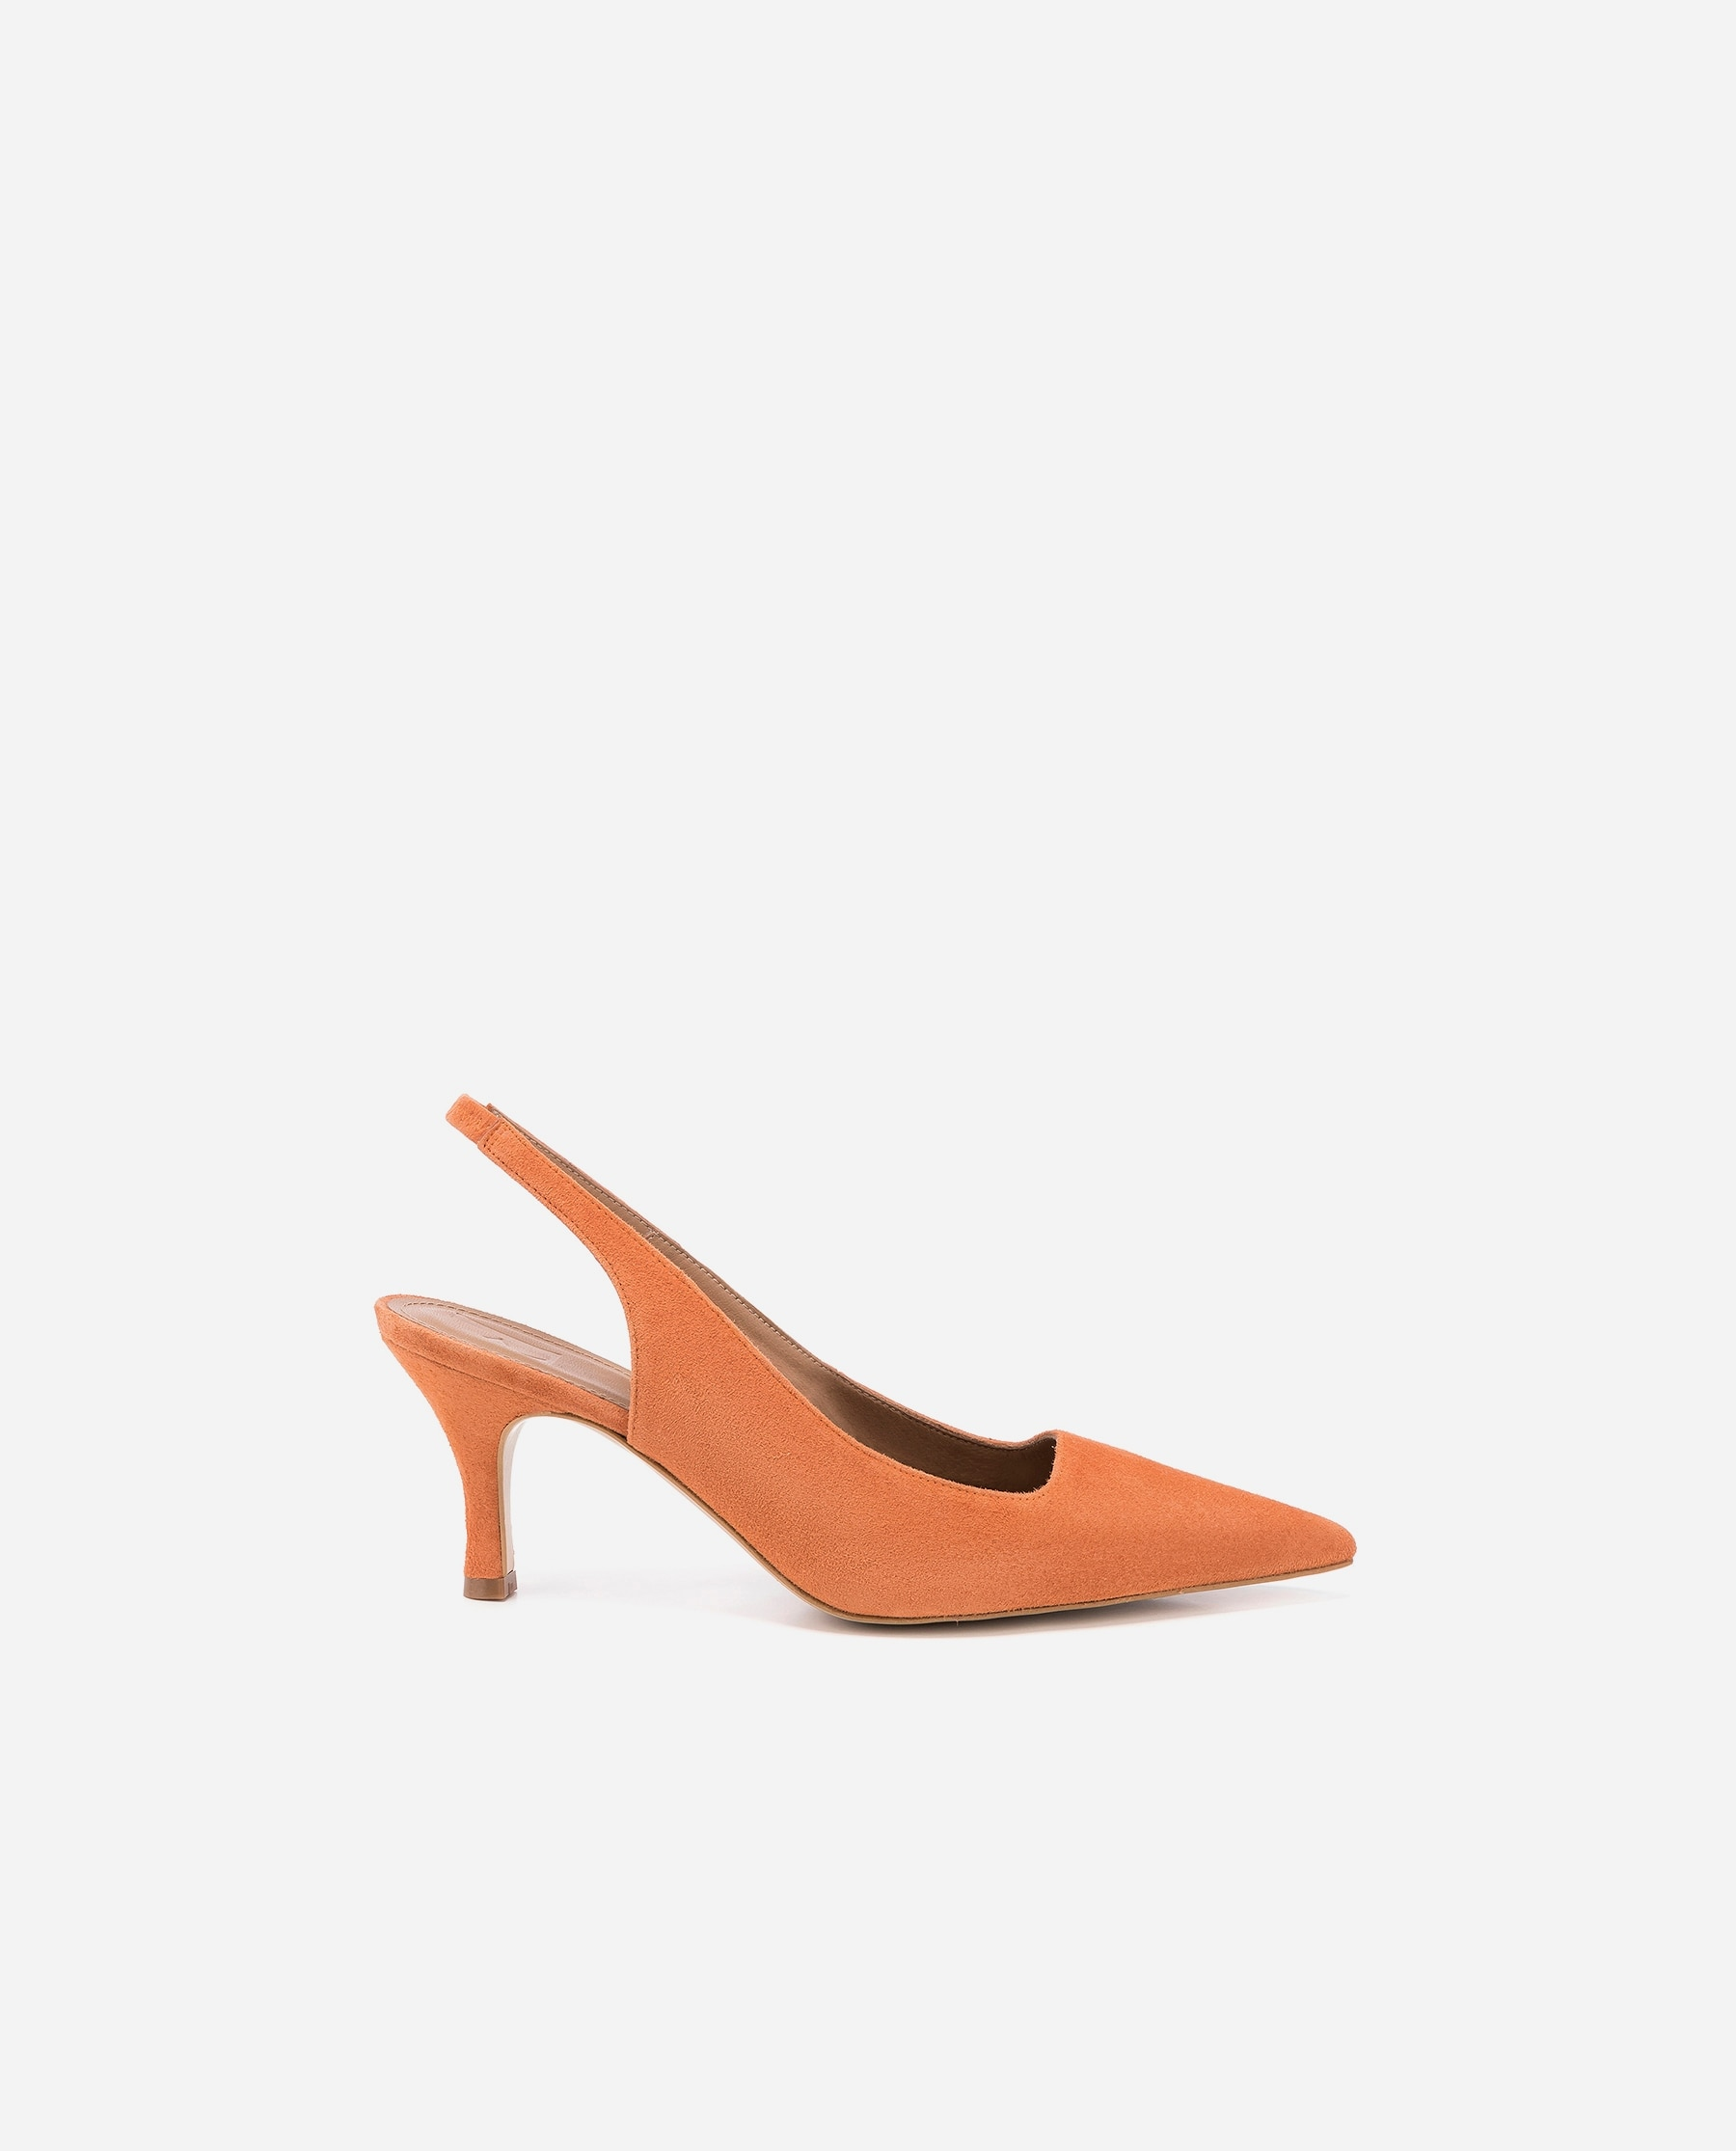 Franchesca Suede Orange